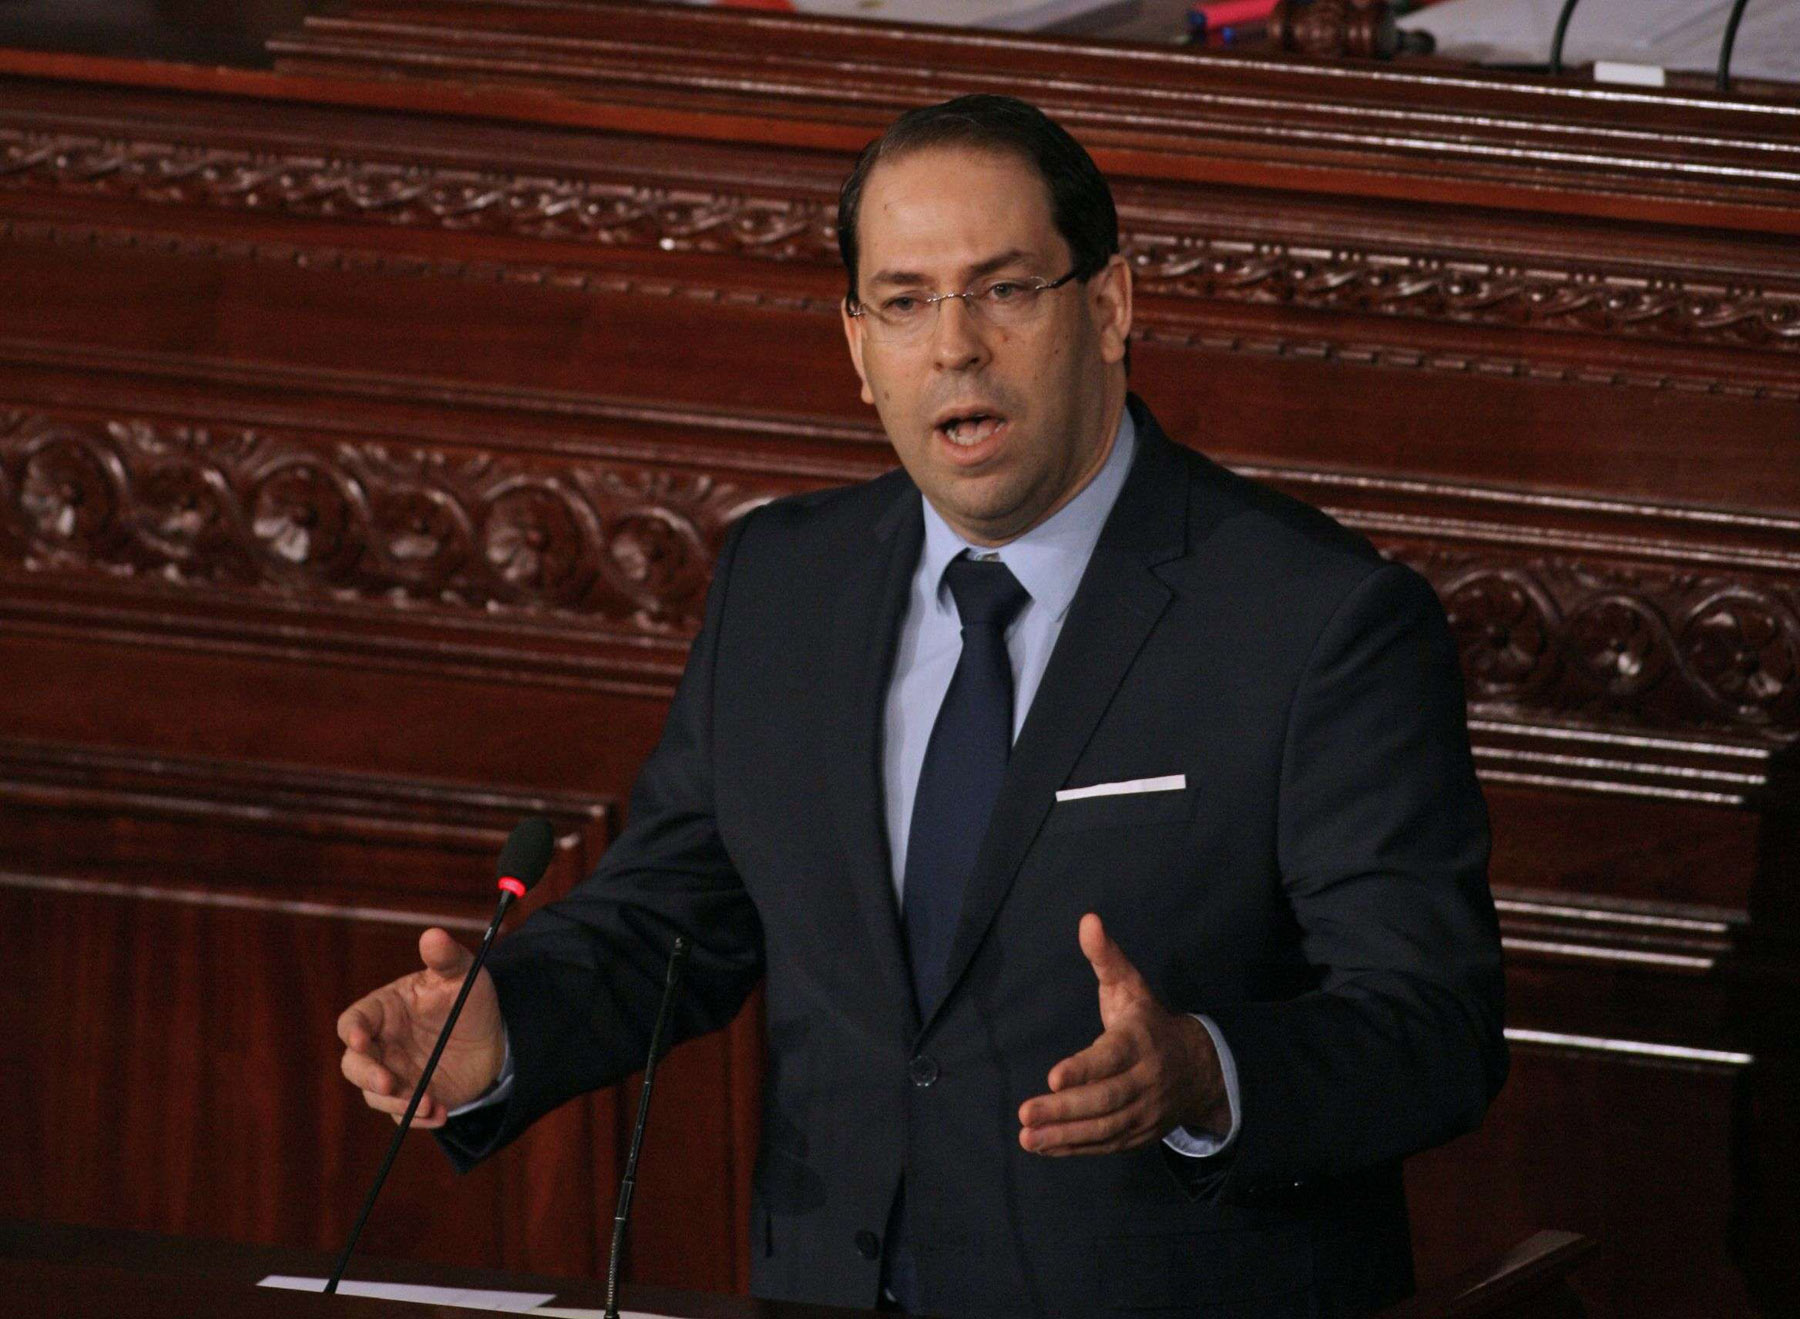 In this file photo taken on March 23, 2018 Tunisian Prime Minister Youssef Chahed addresses parliament during a session in the capital Tunis, amidst calls to reshuffle government. (AFP)